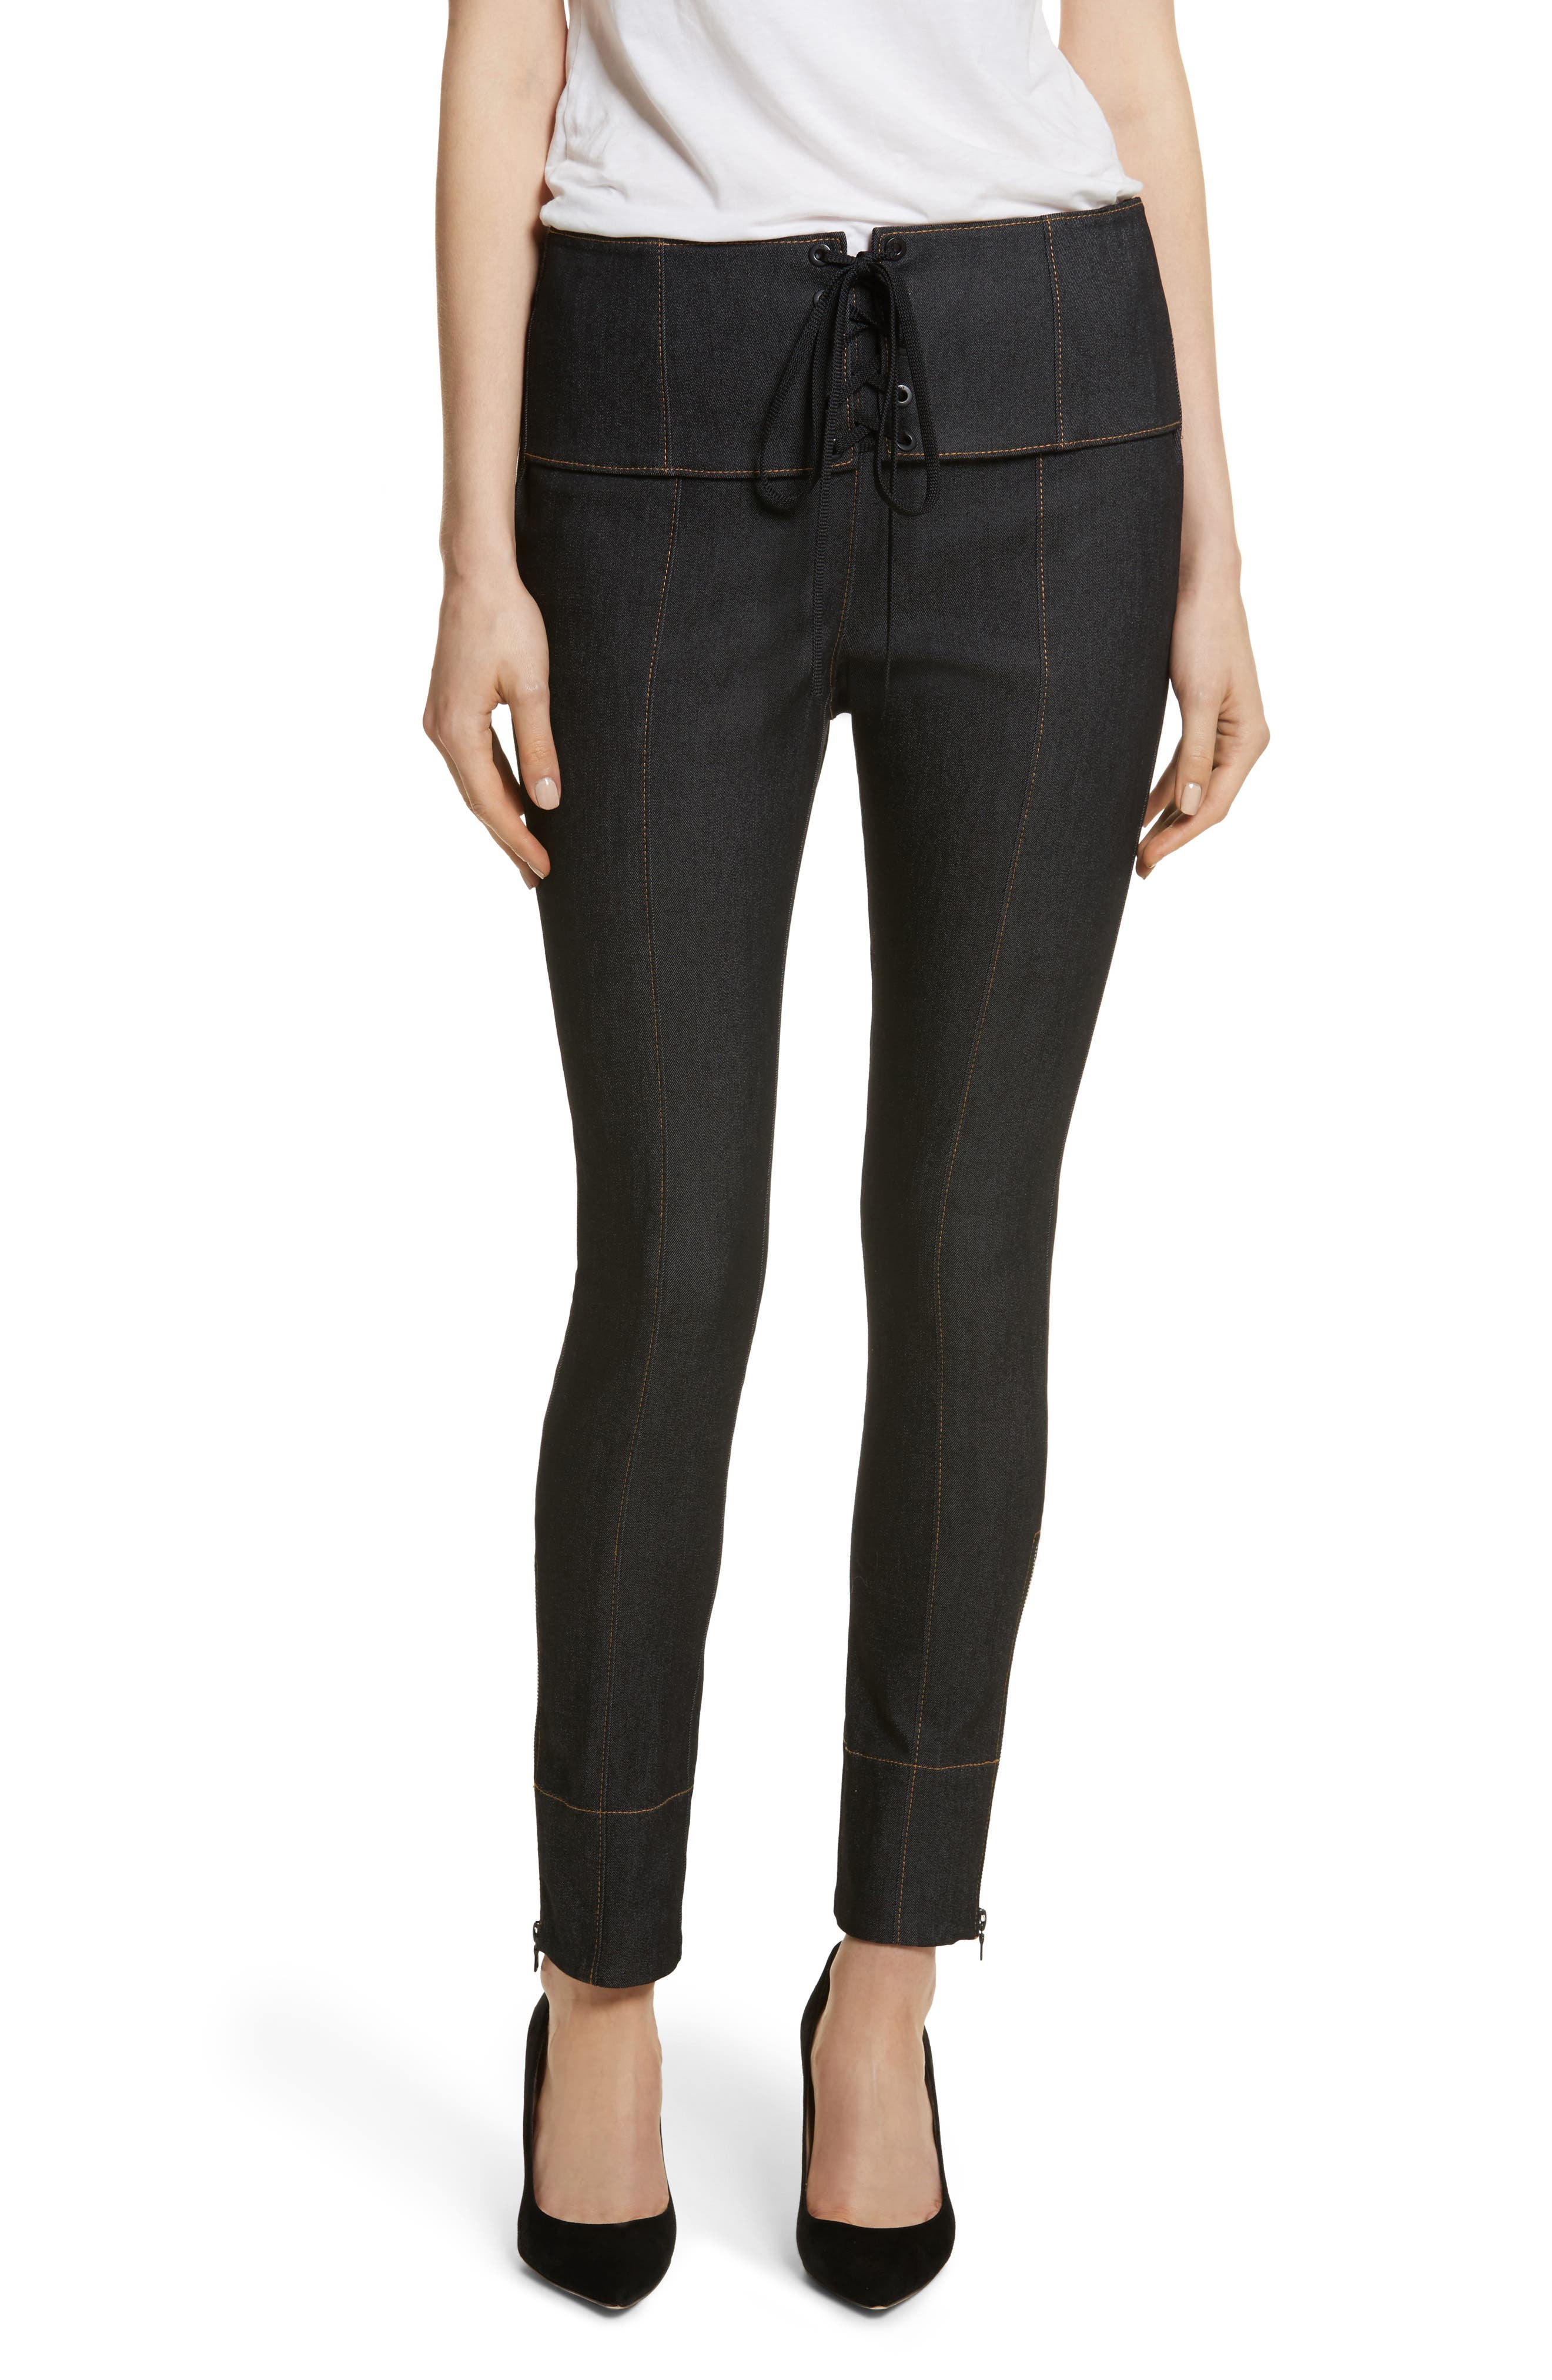 Andie Lace Front Skinny Ankle Jeans,                             Main thumbnail 1, color,                             001